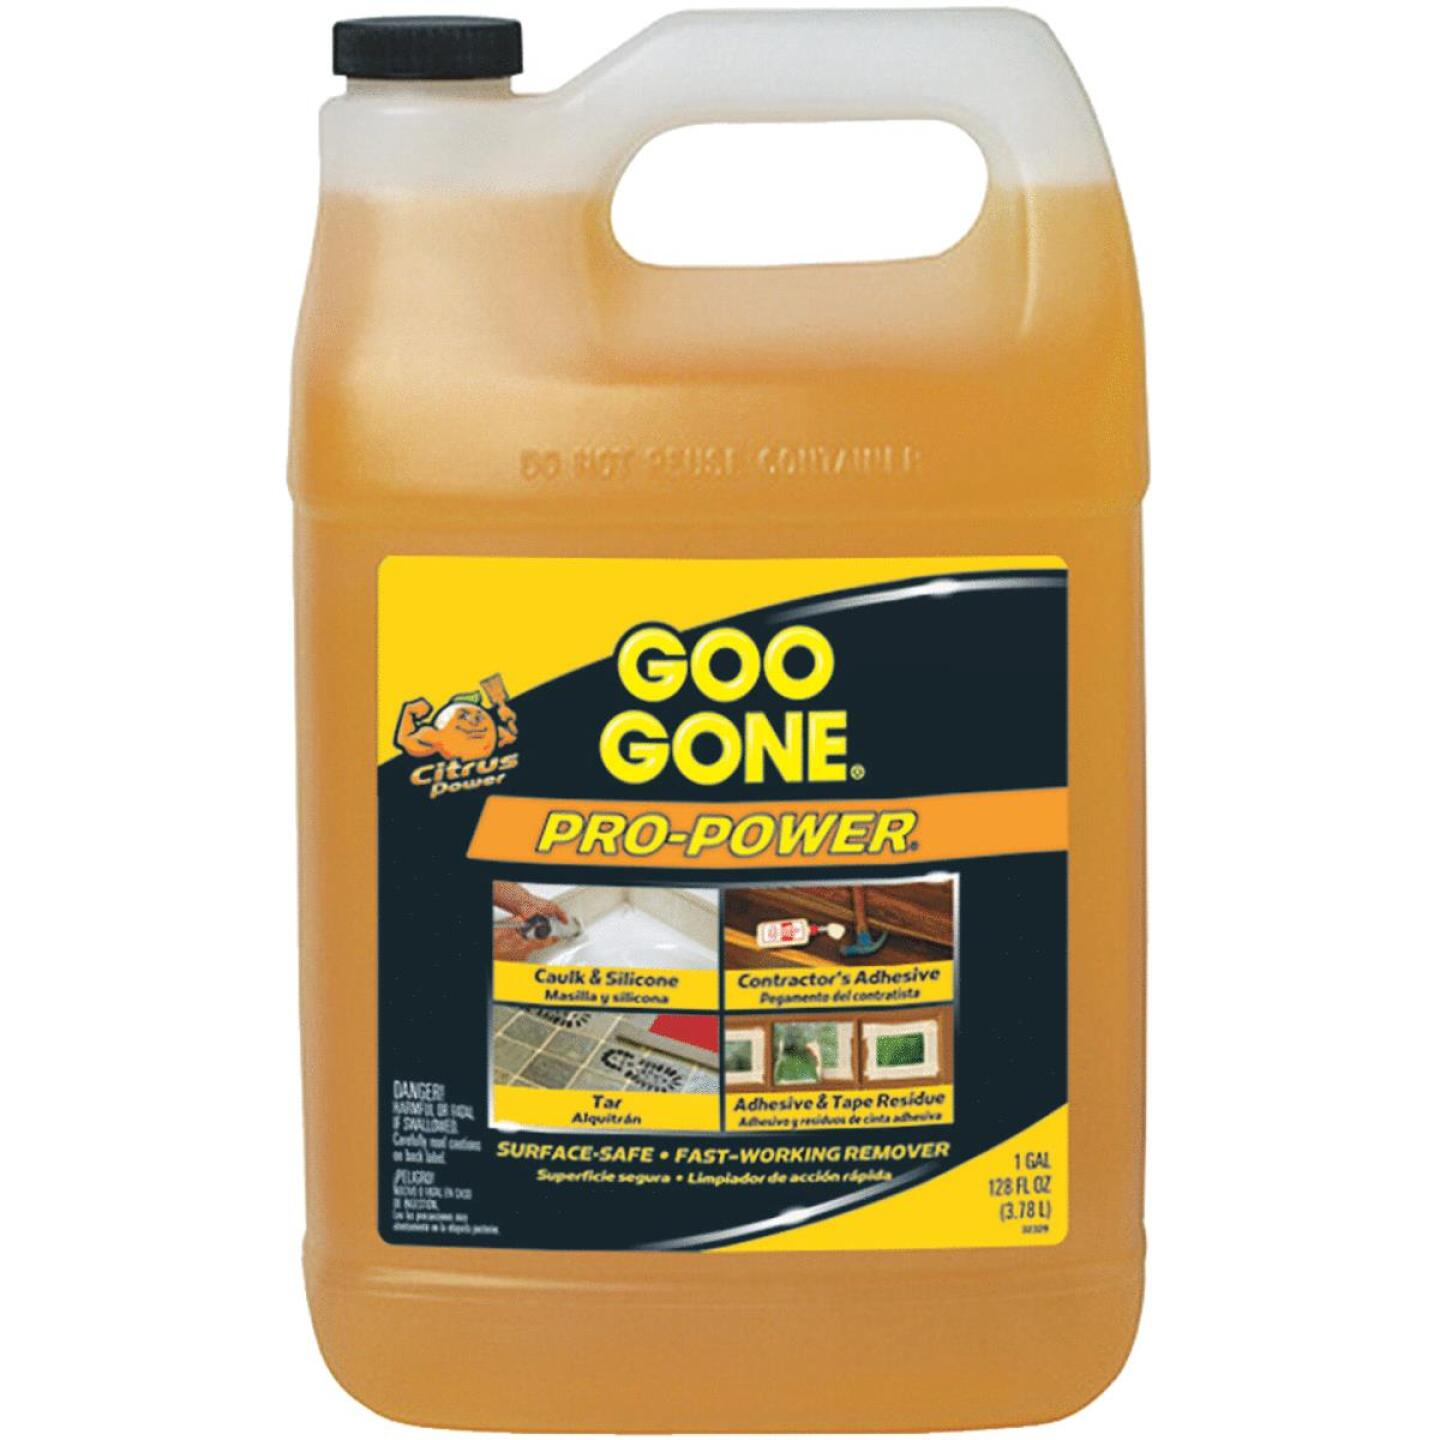 Goo Gone 1 Gal. Pro-Power Adhesive Remover Image 12